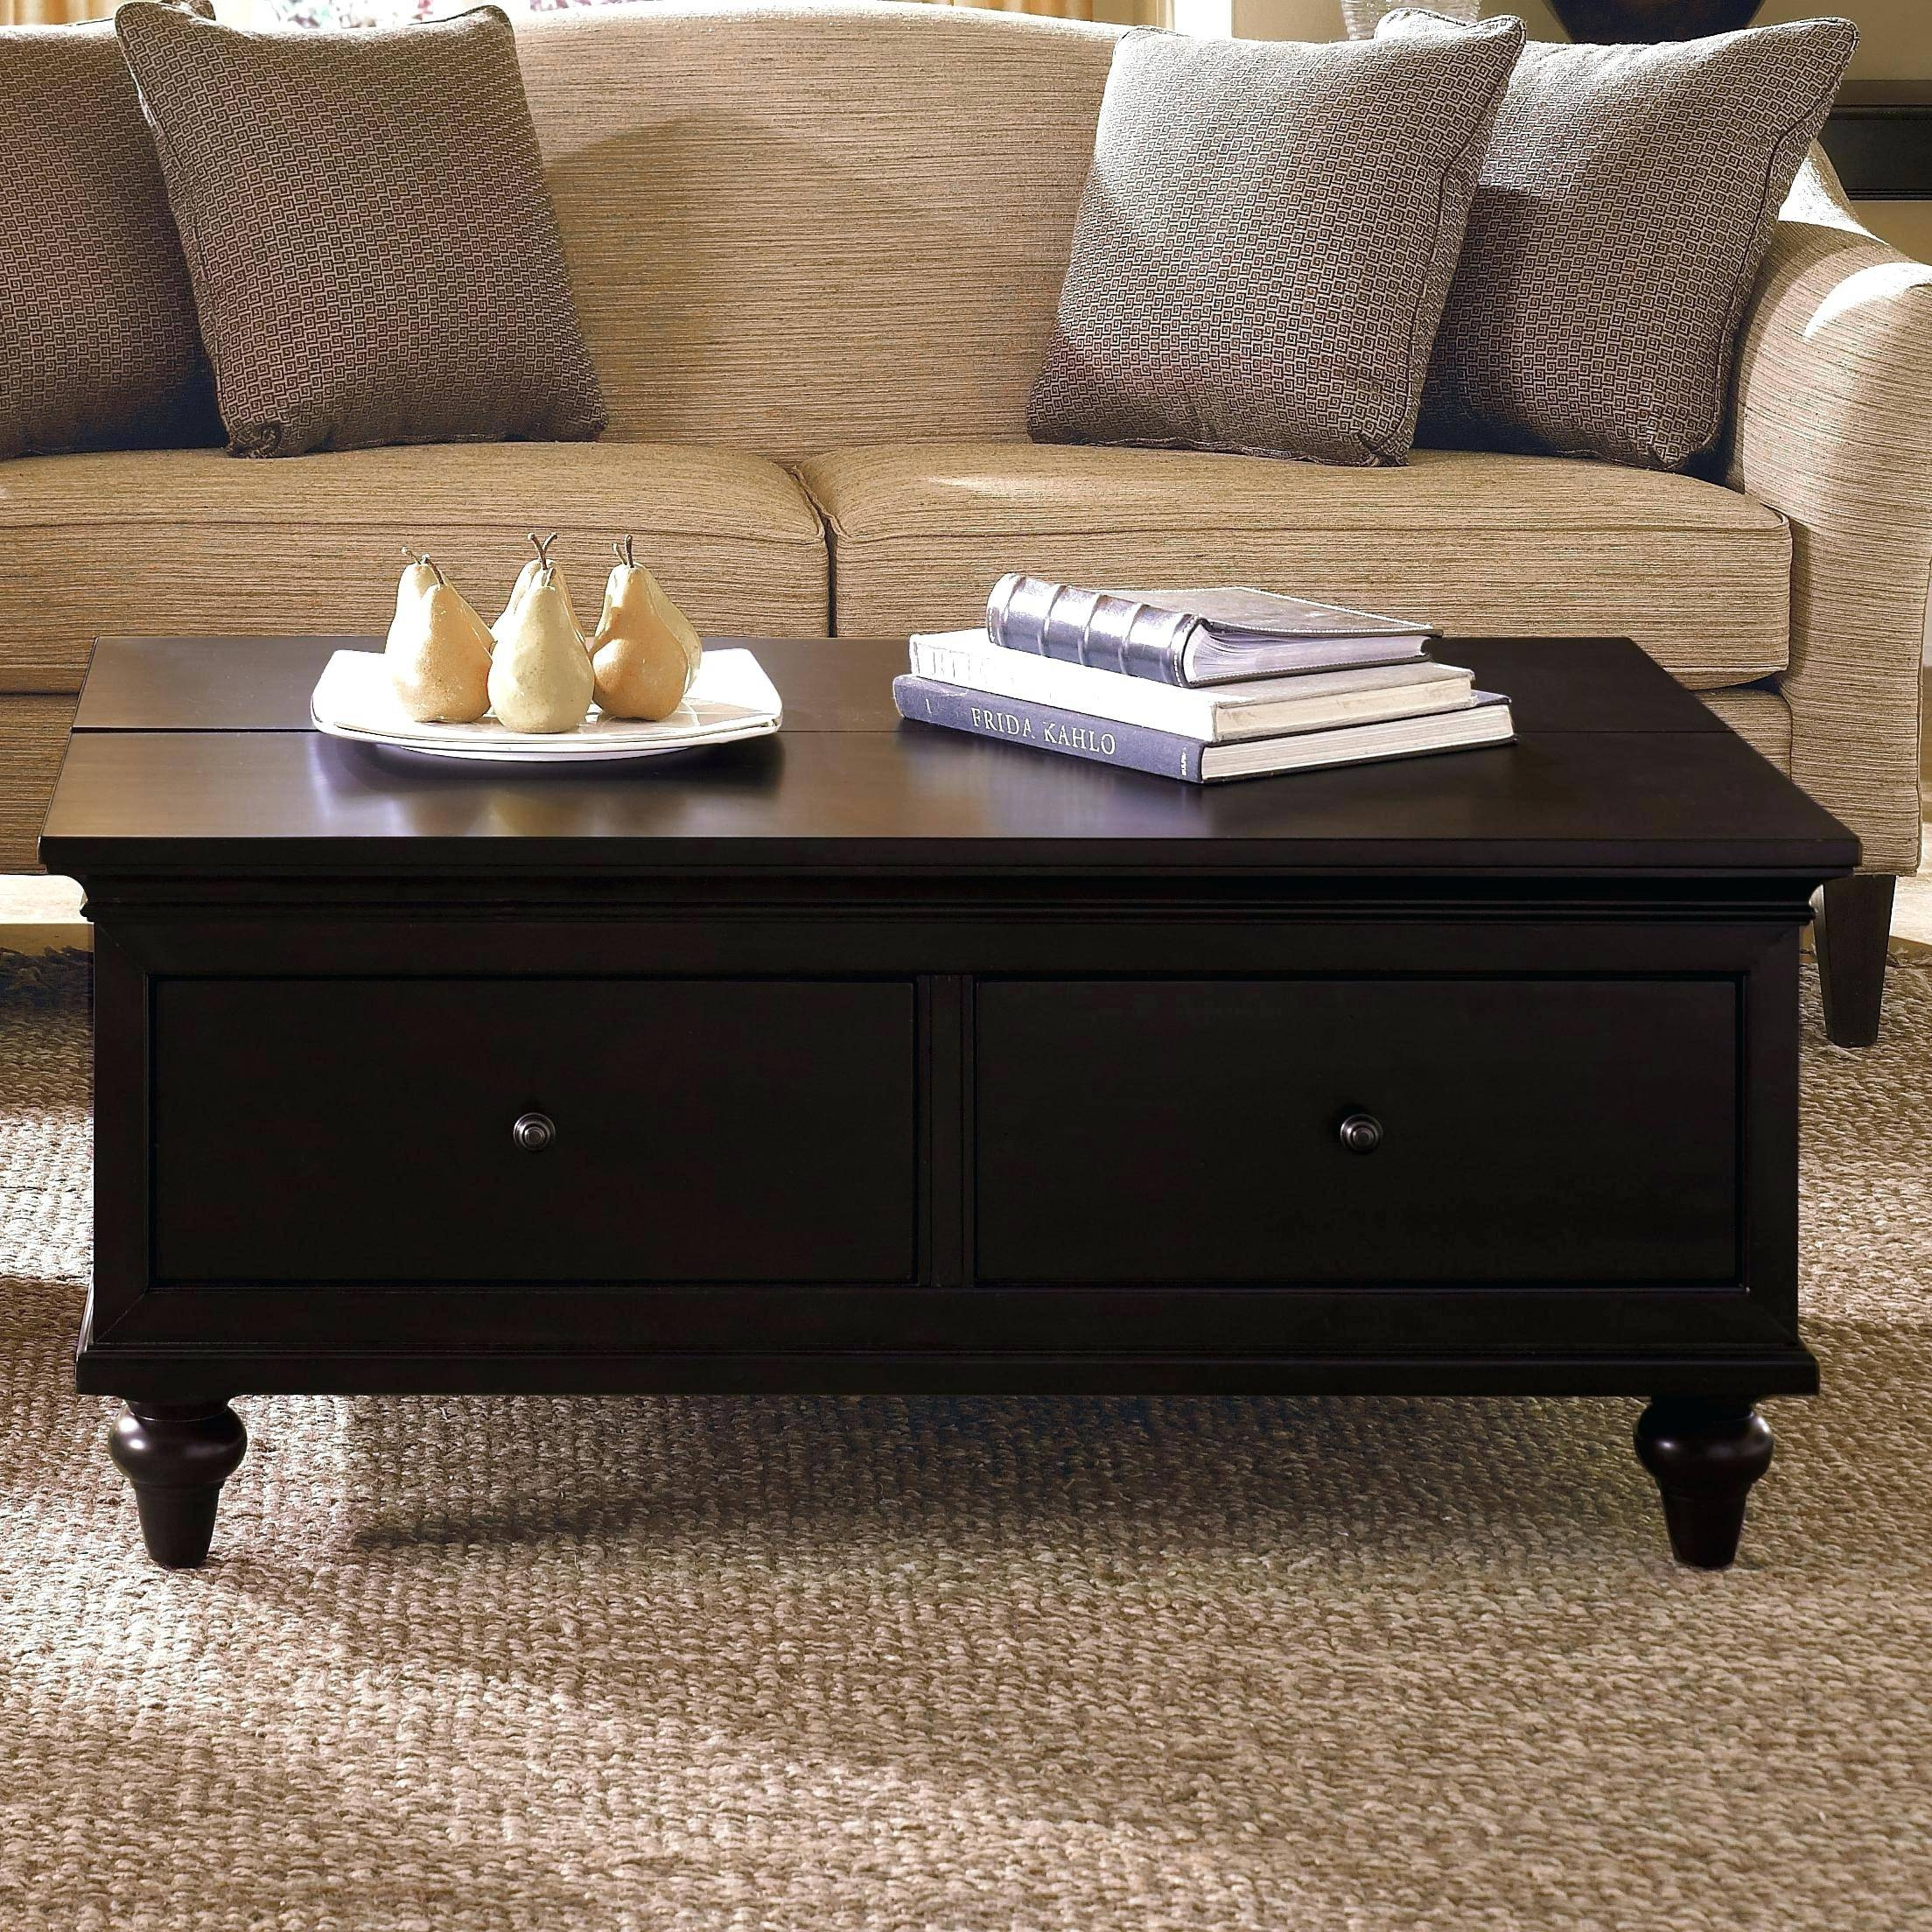 Marble Coffee Table With Drawers: Top 25 Of Cream Coffee Tables With Drawers